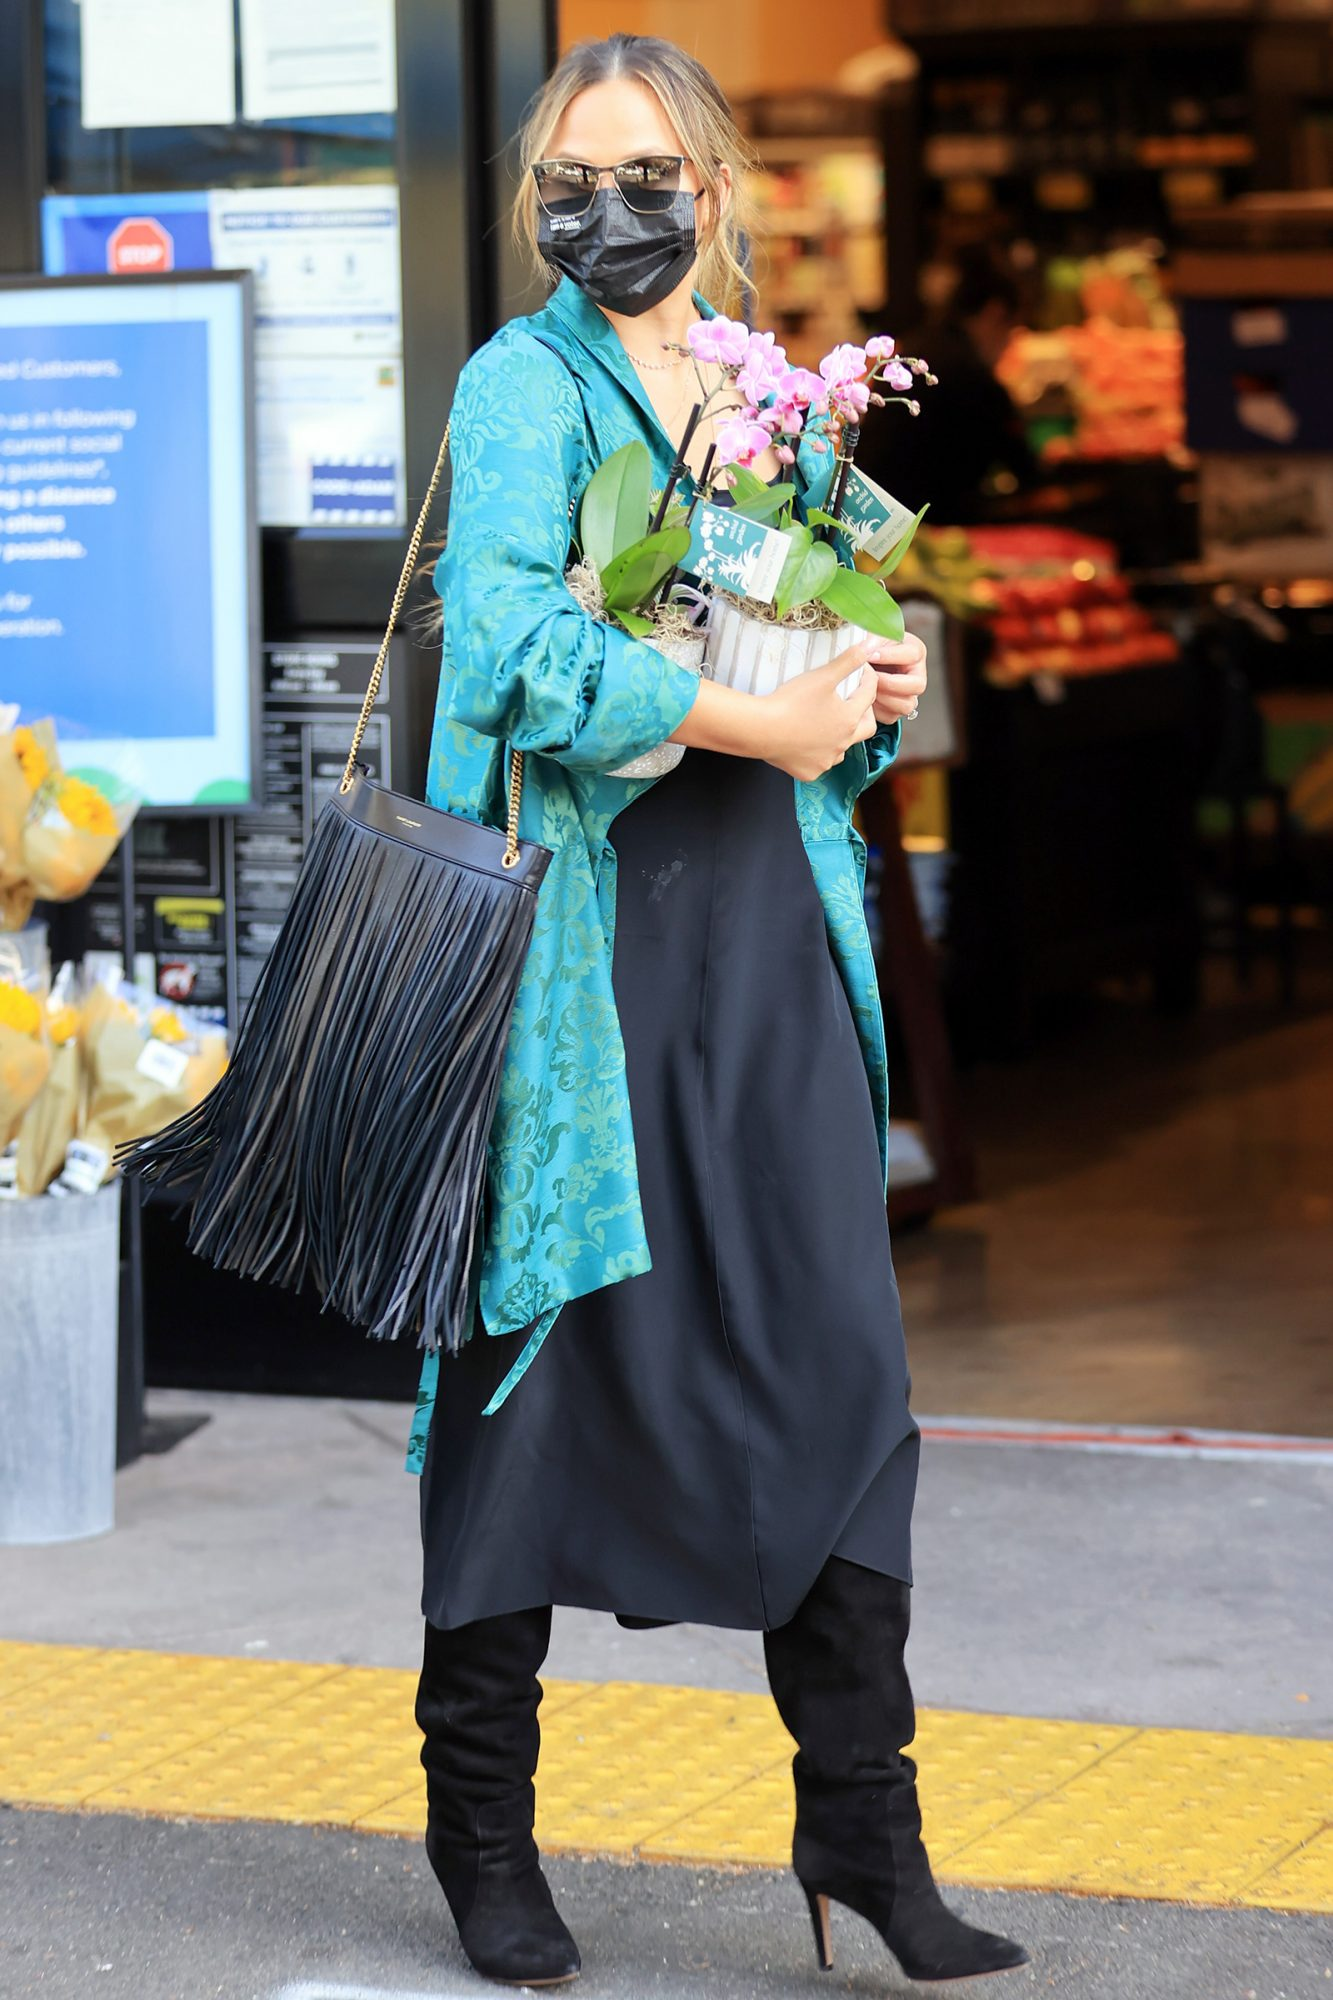 Chrissy Teigen buys flowers during shopping trip with her mom Vilailuck Teigen